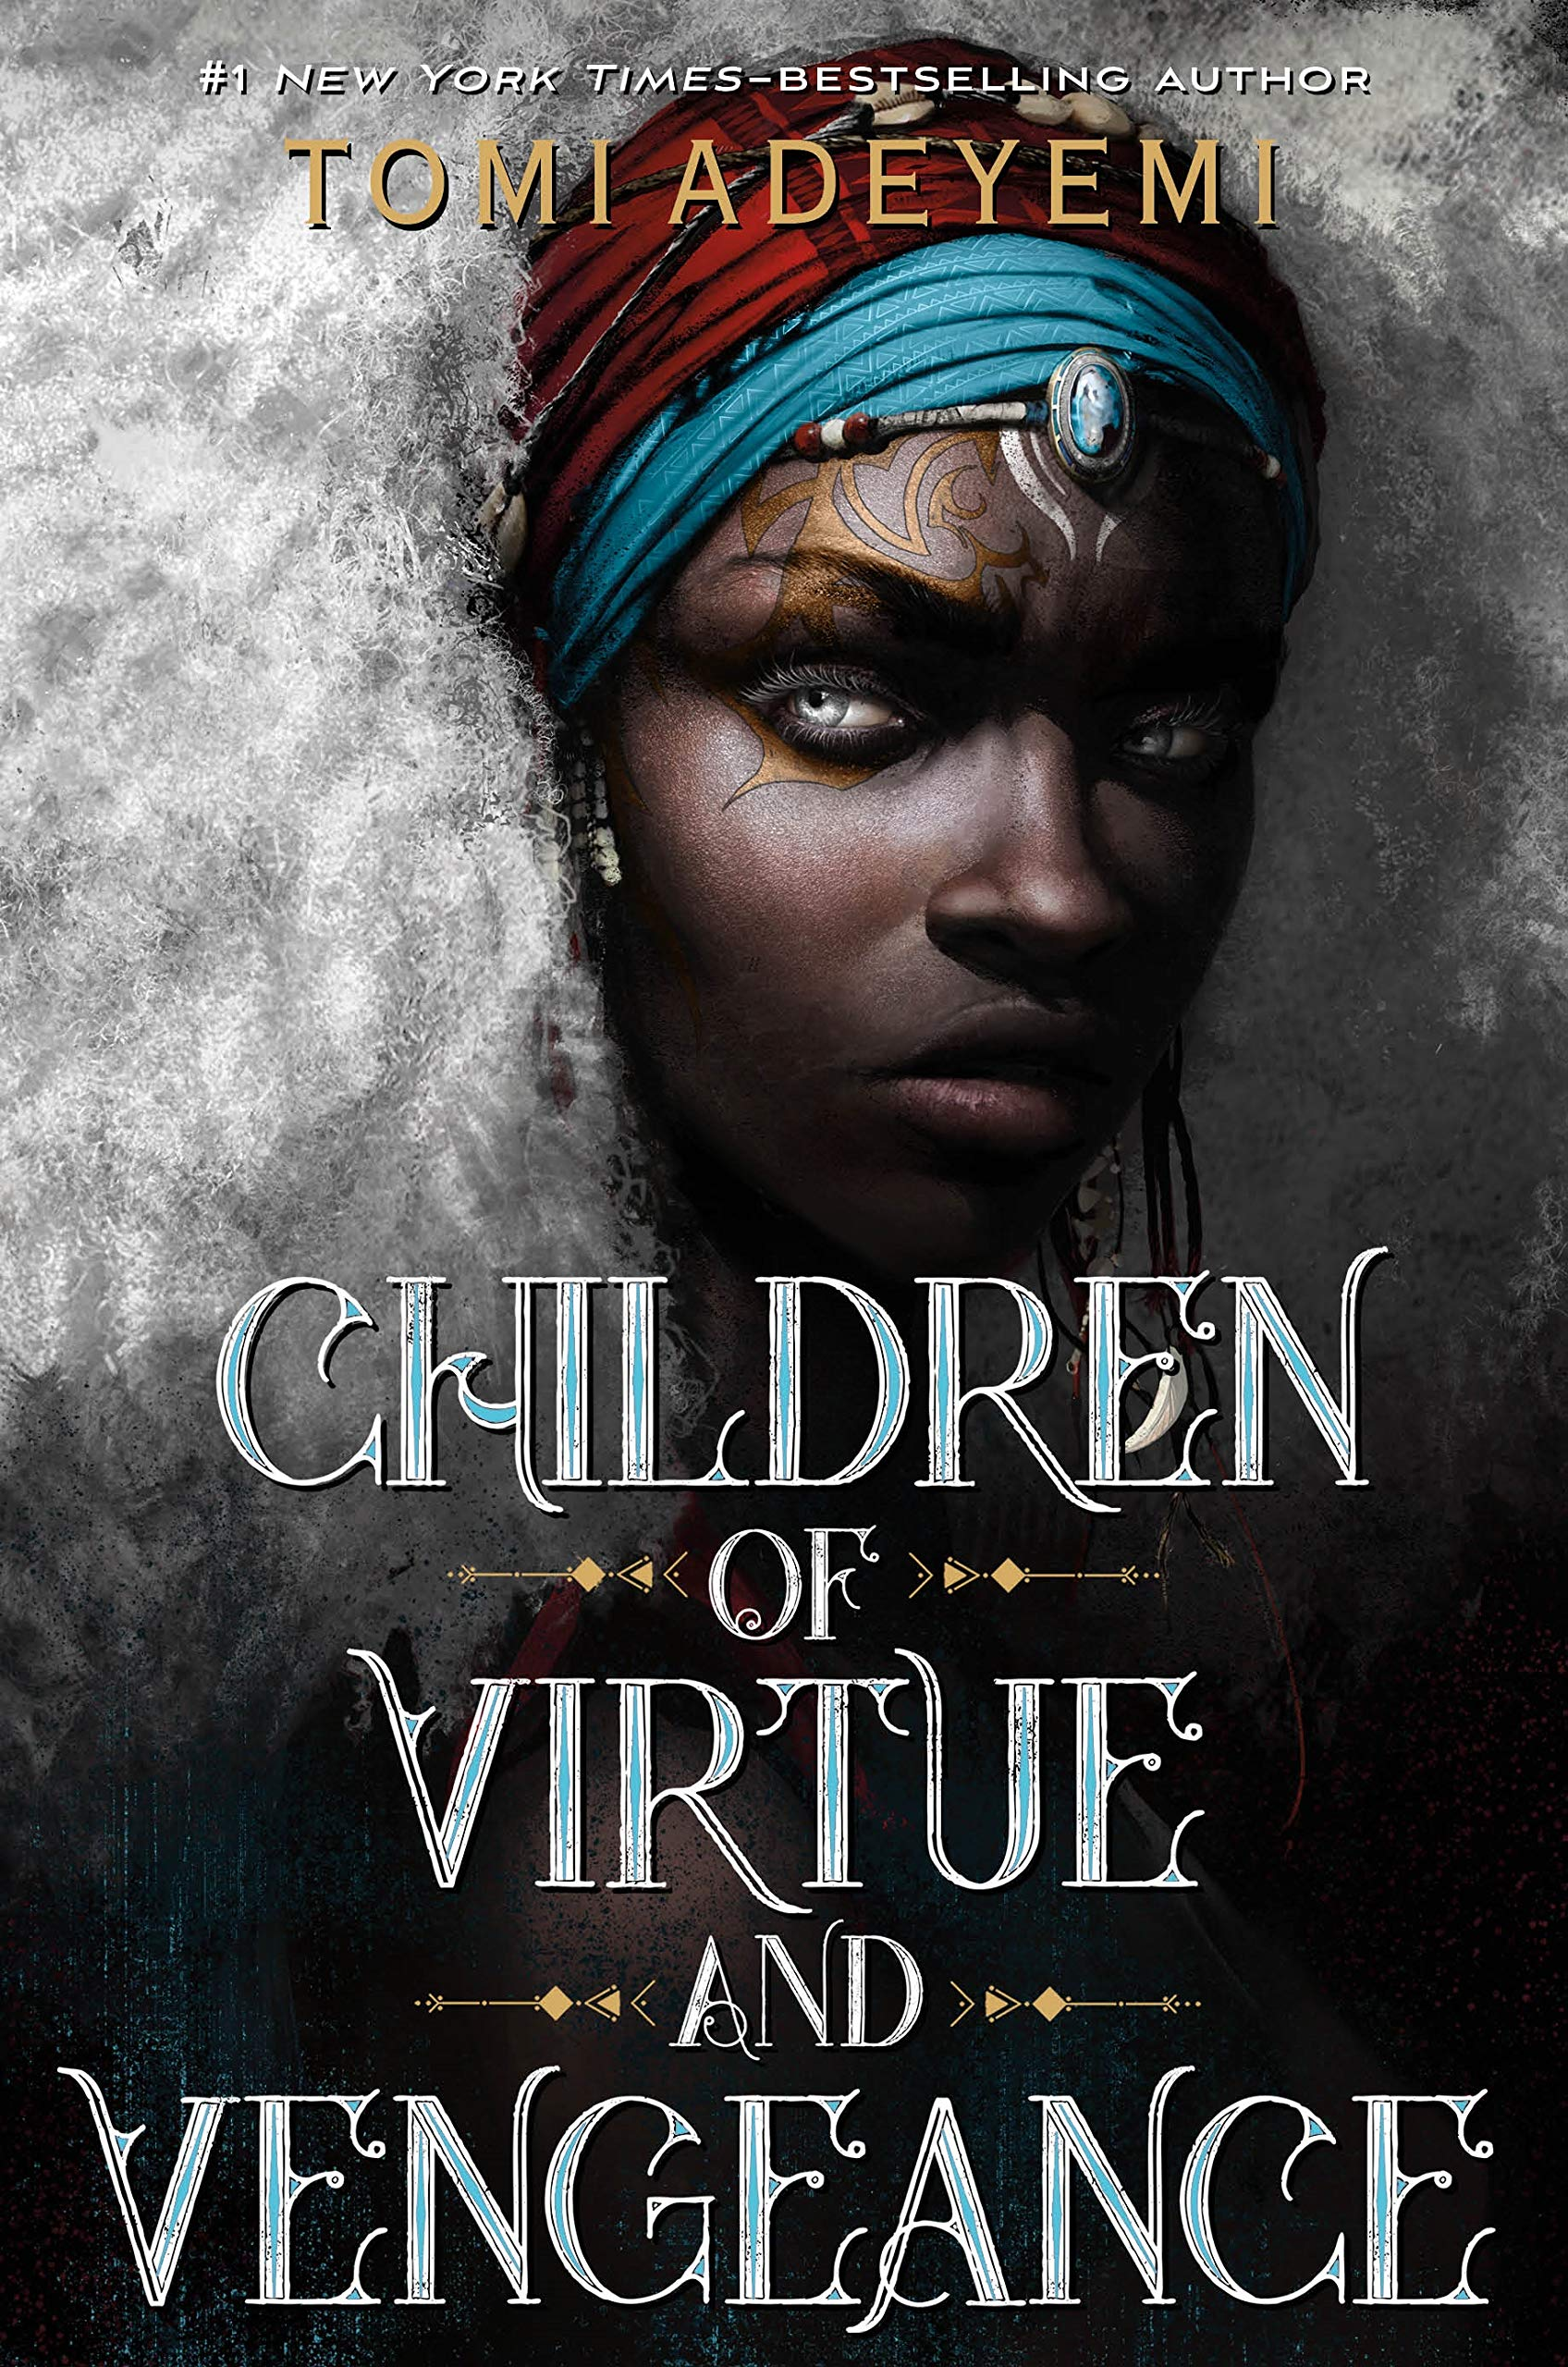 Amazon.com: Children of Virtue and Vengeance (Legacy of Orisha ...